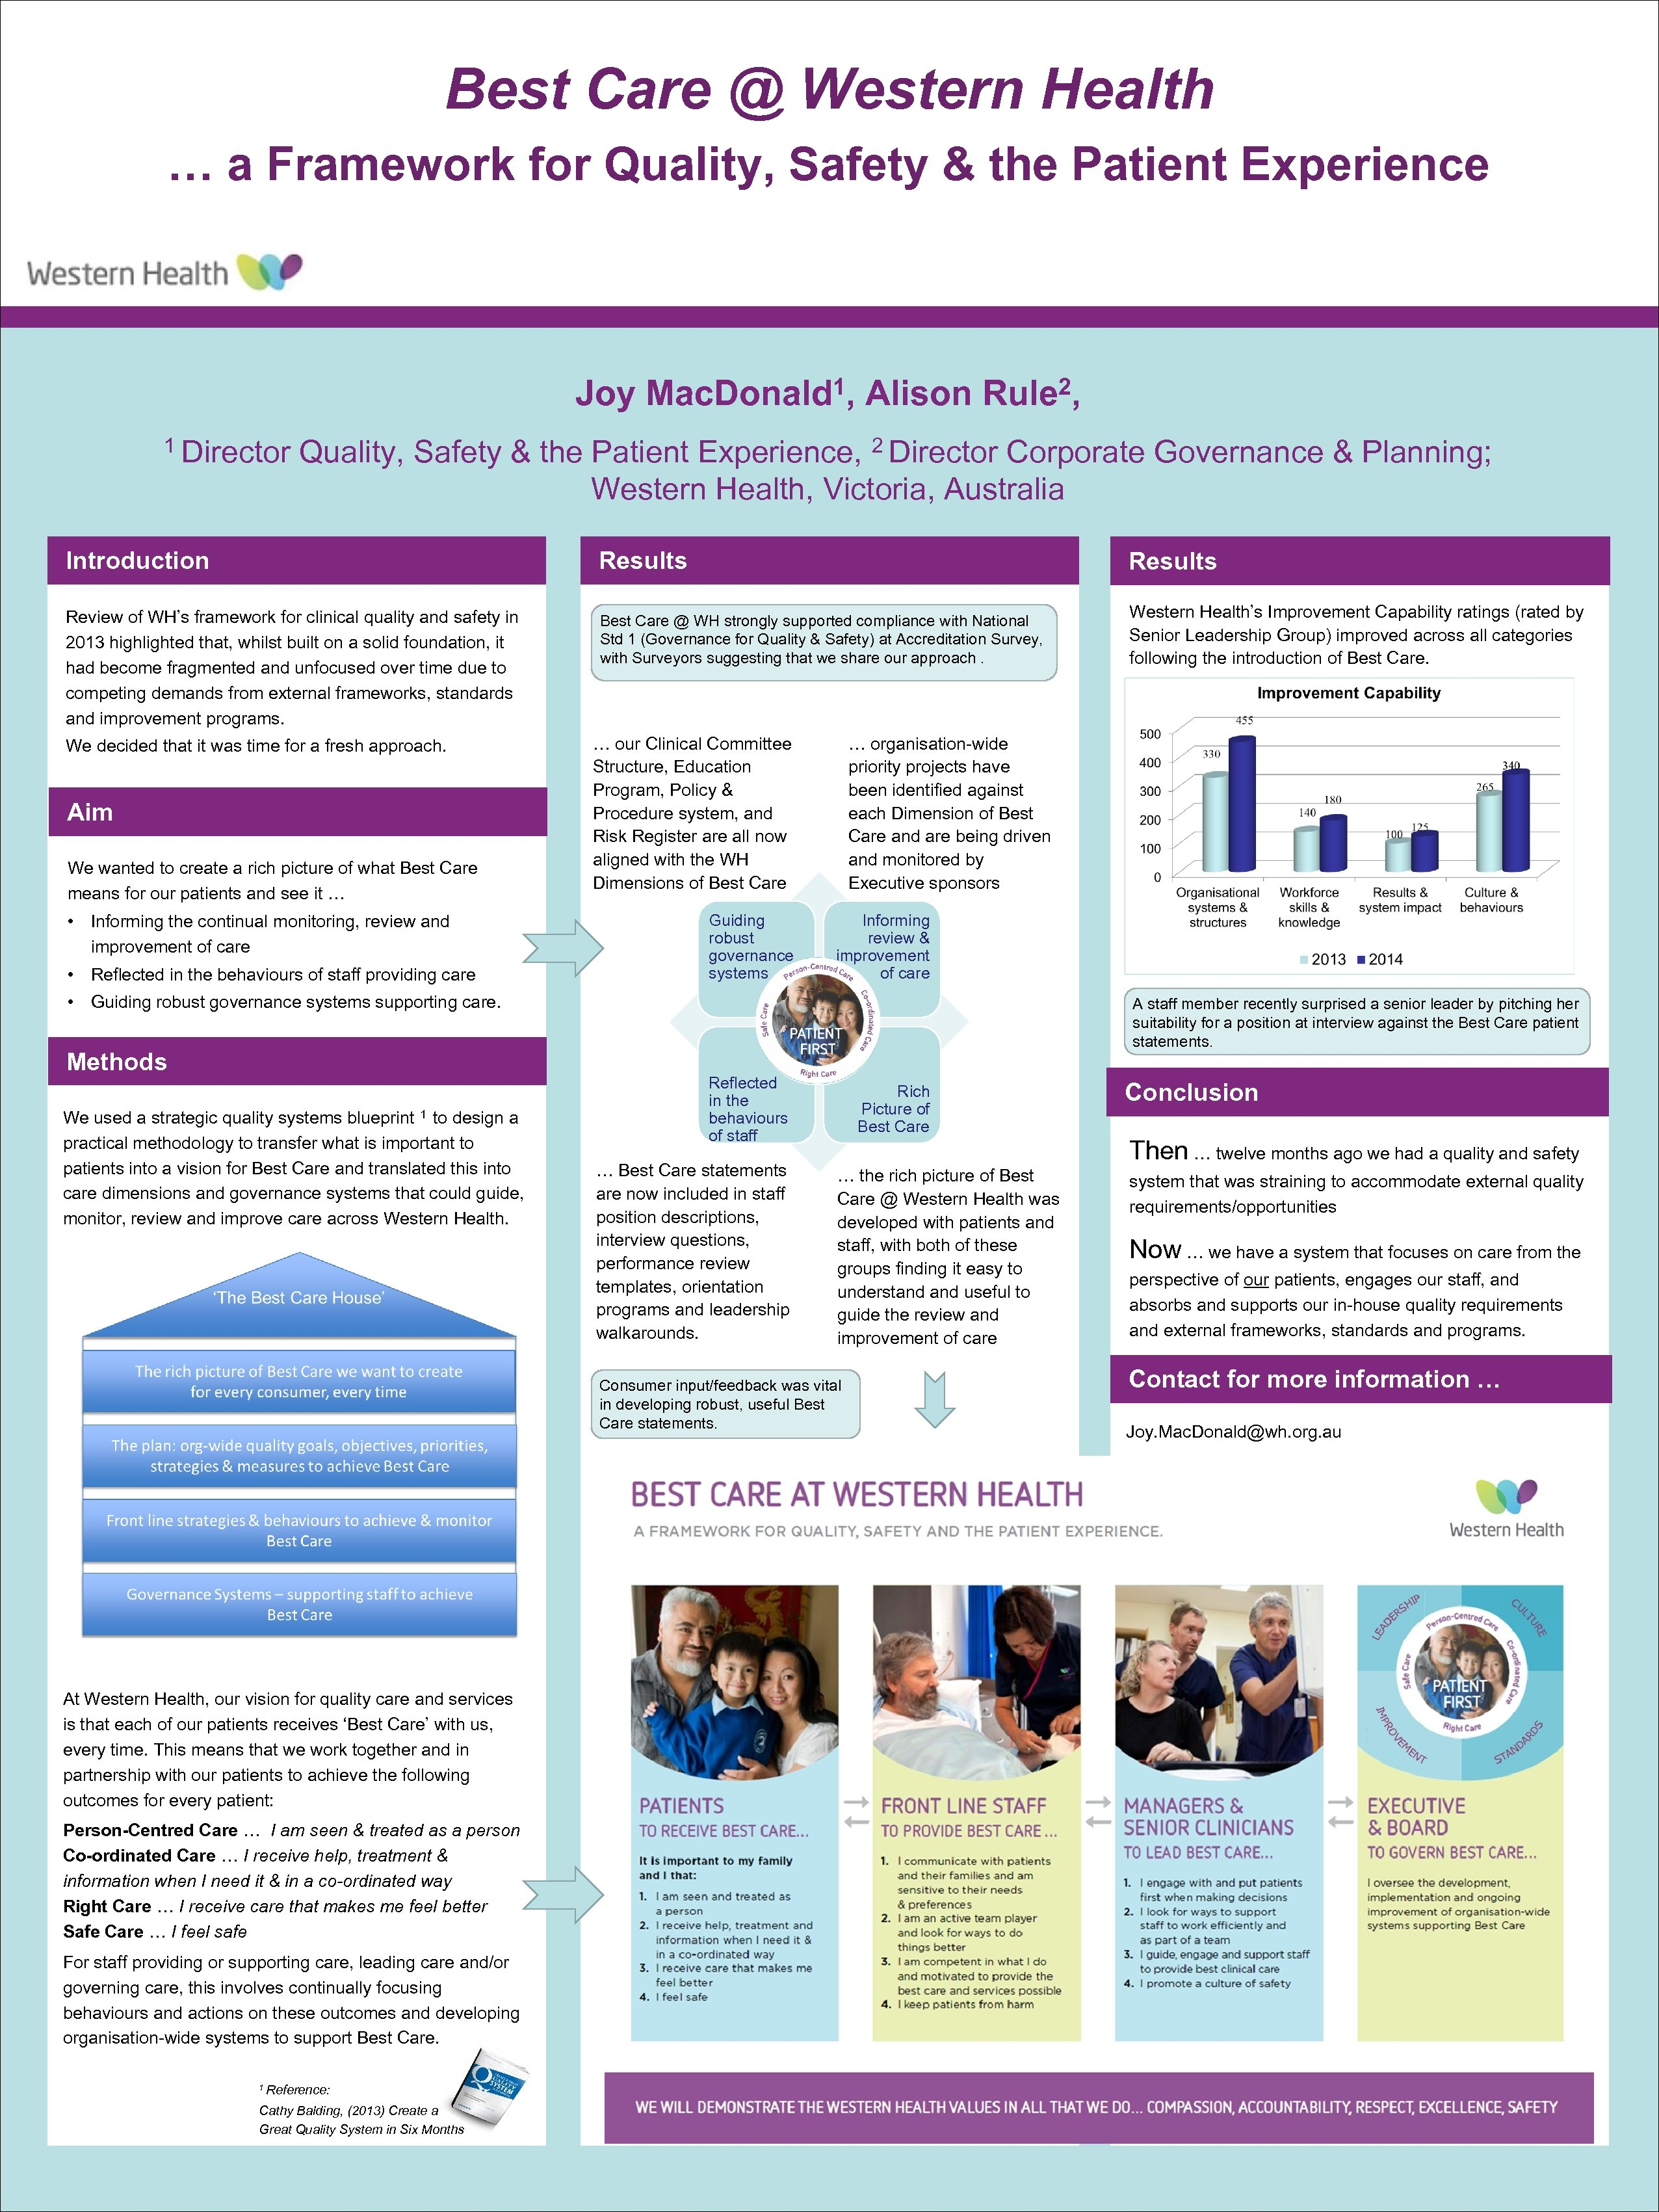 Best Care @ Western Health … a Framework for Quality, Safety & the Patient